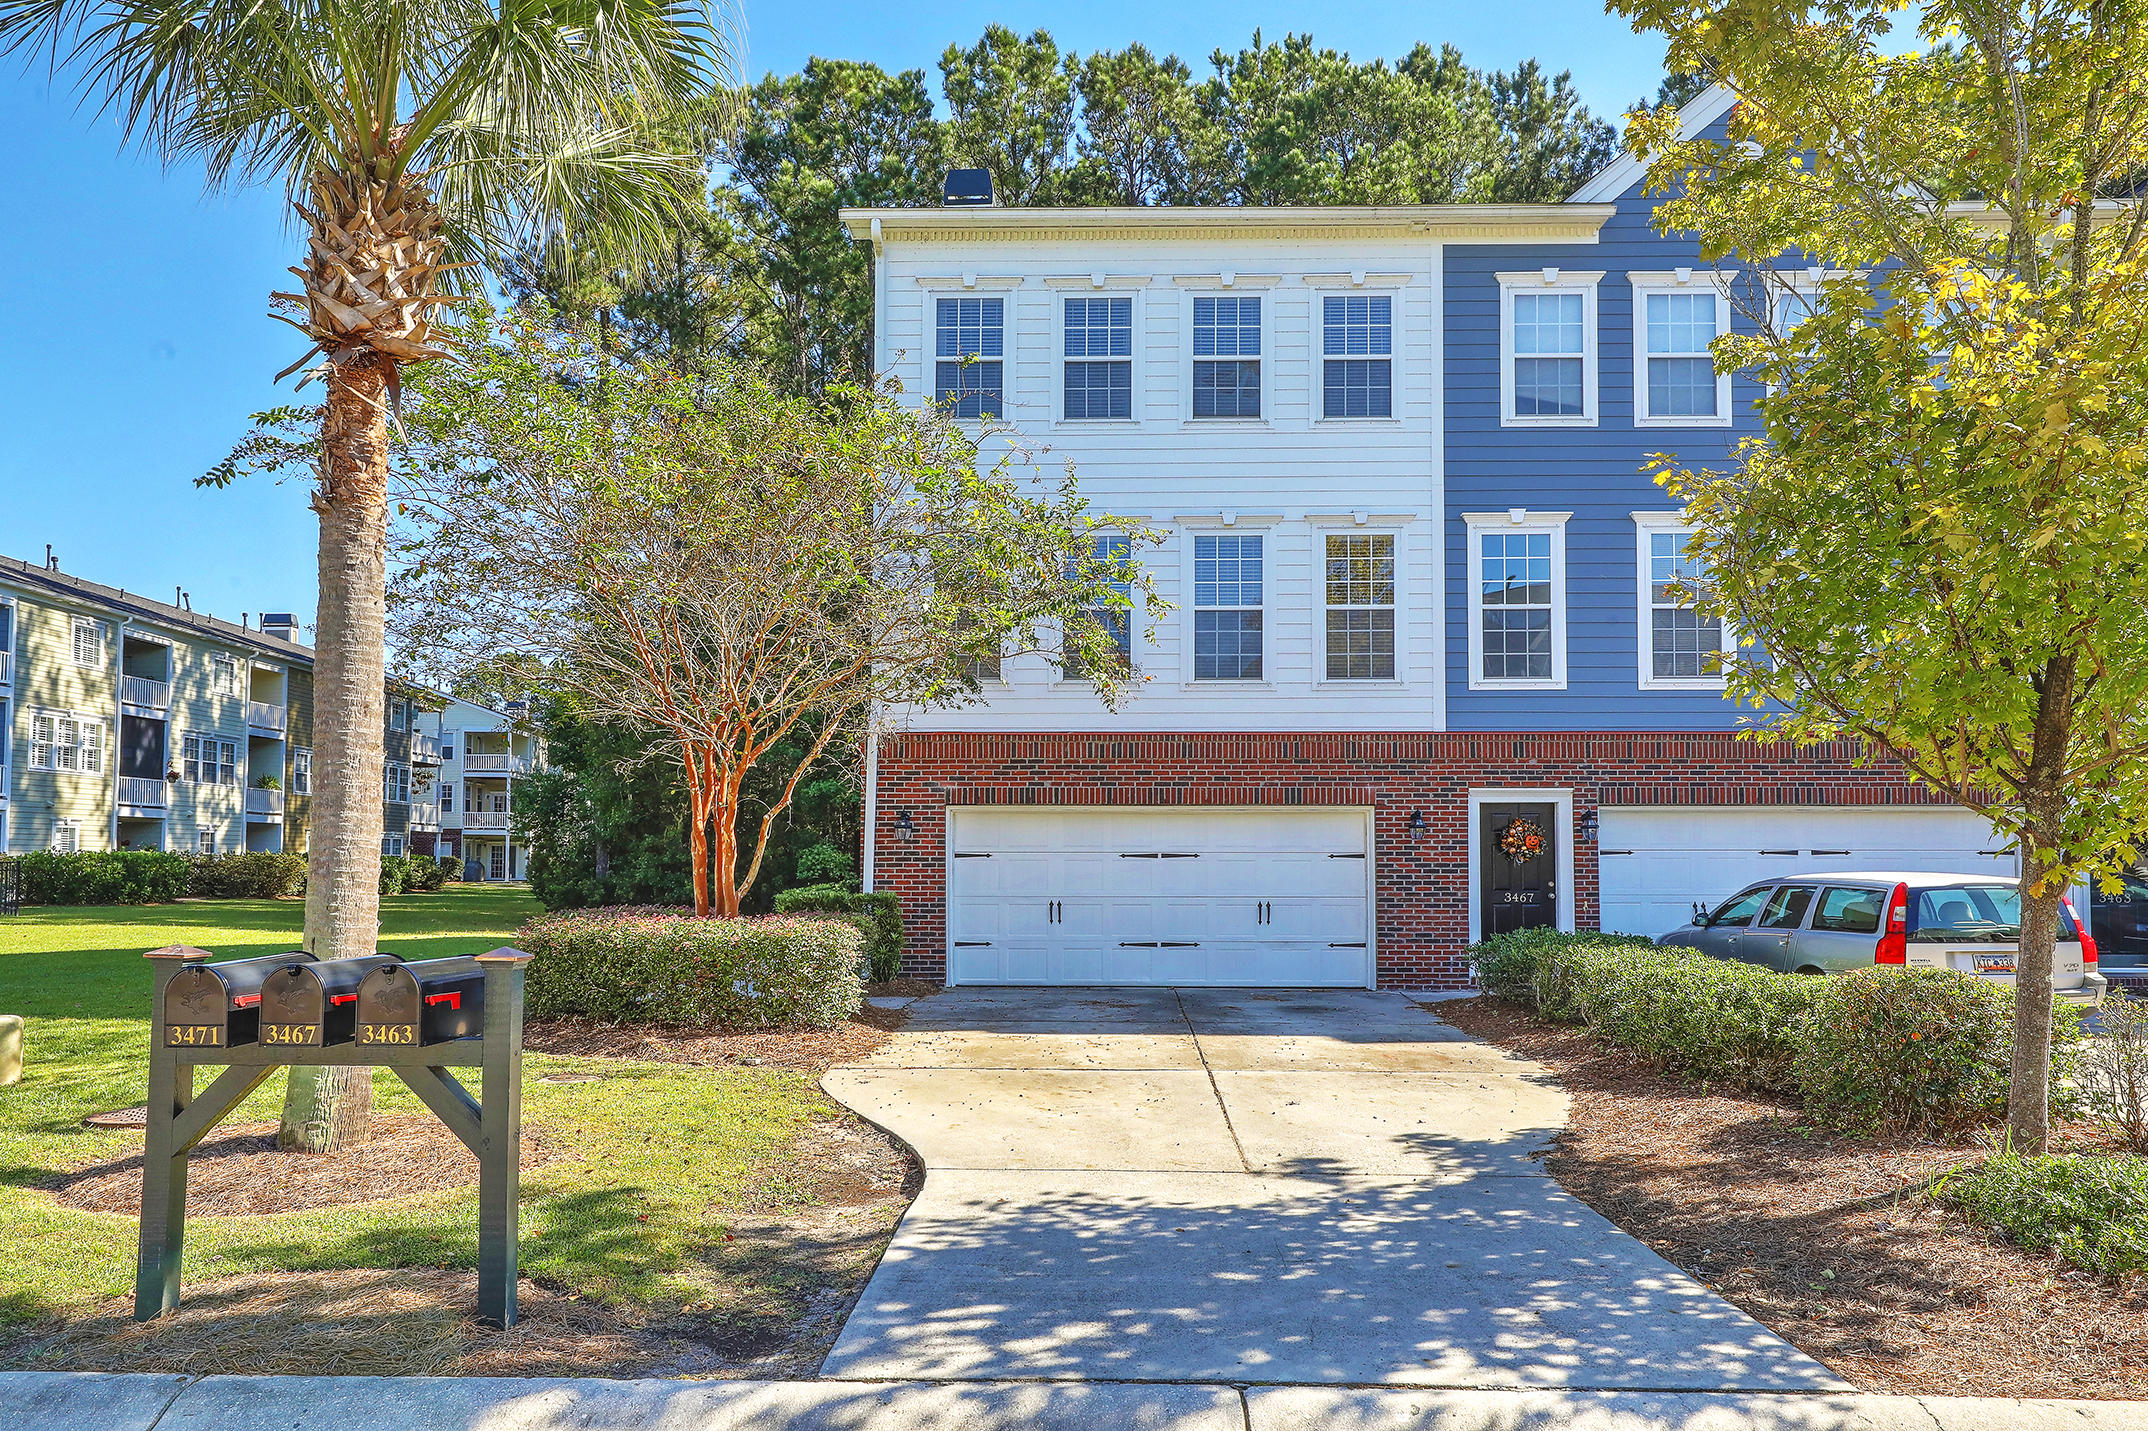 Kensington at Park West Homes For Sale - 3471 Claremont, Mount Pleasant, SC - 34